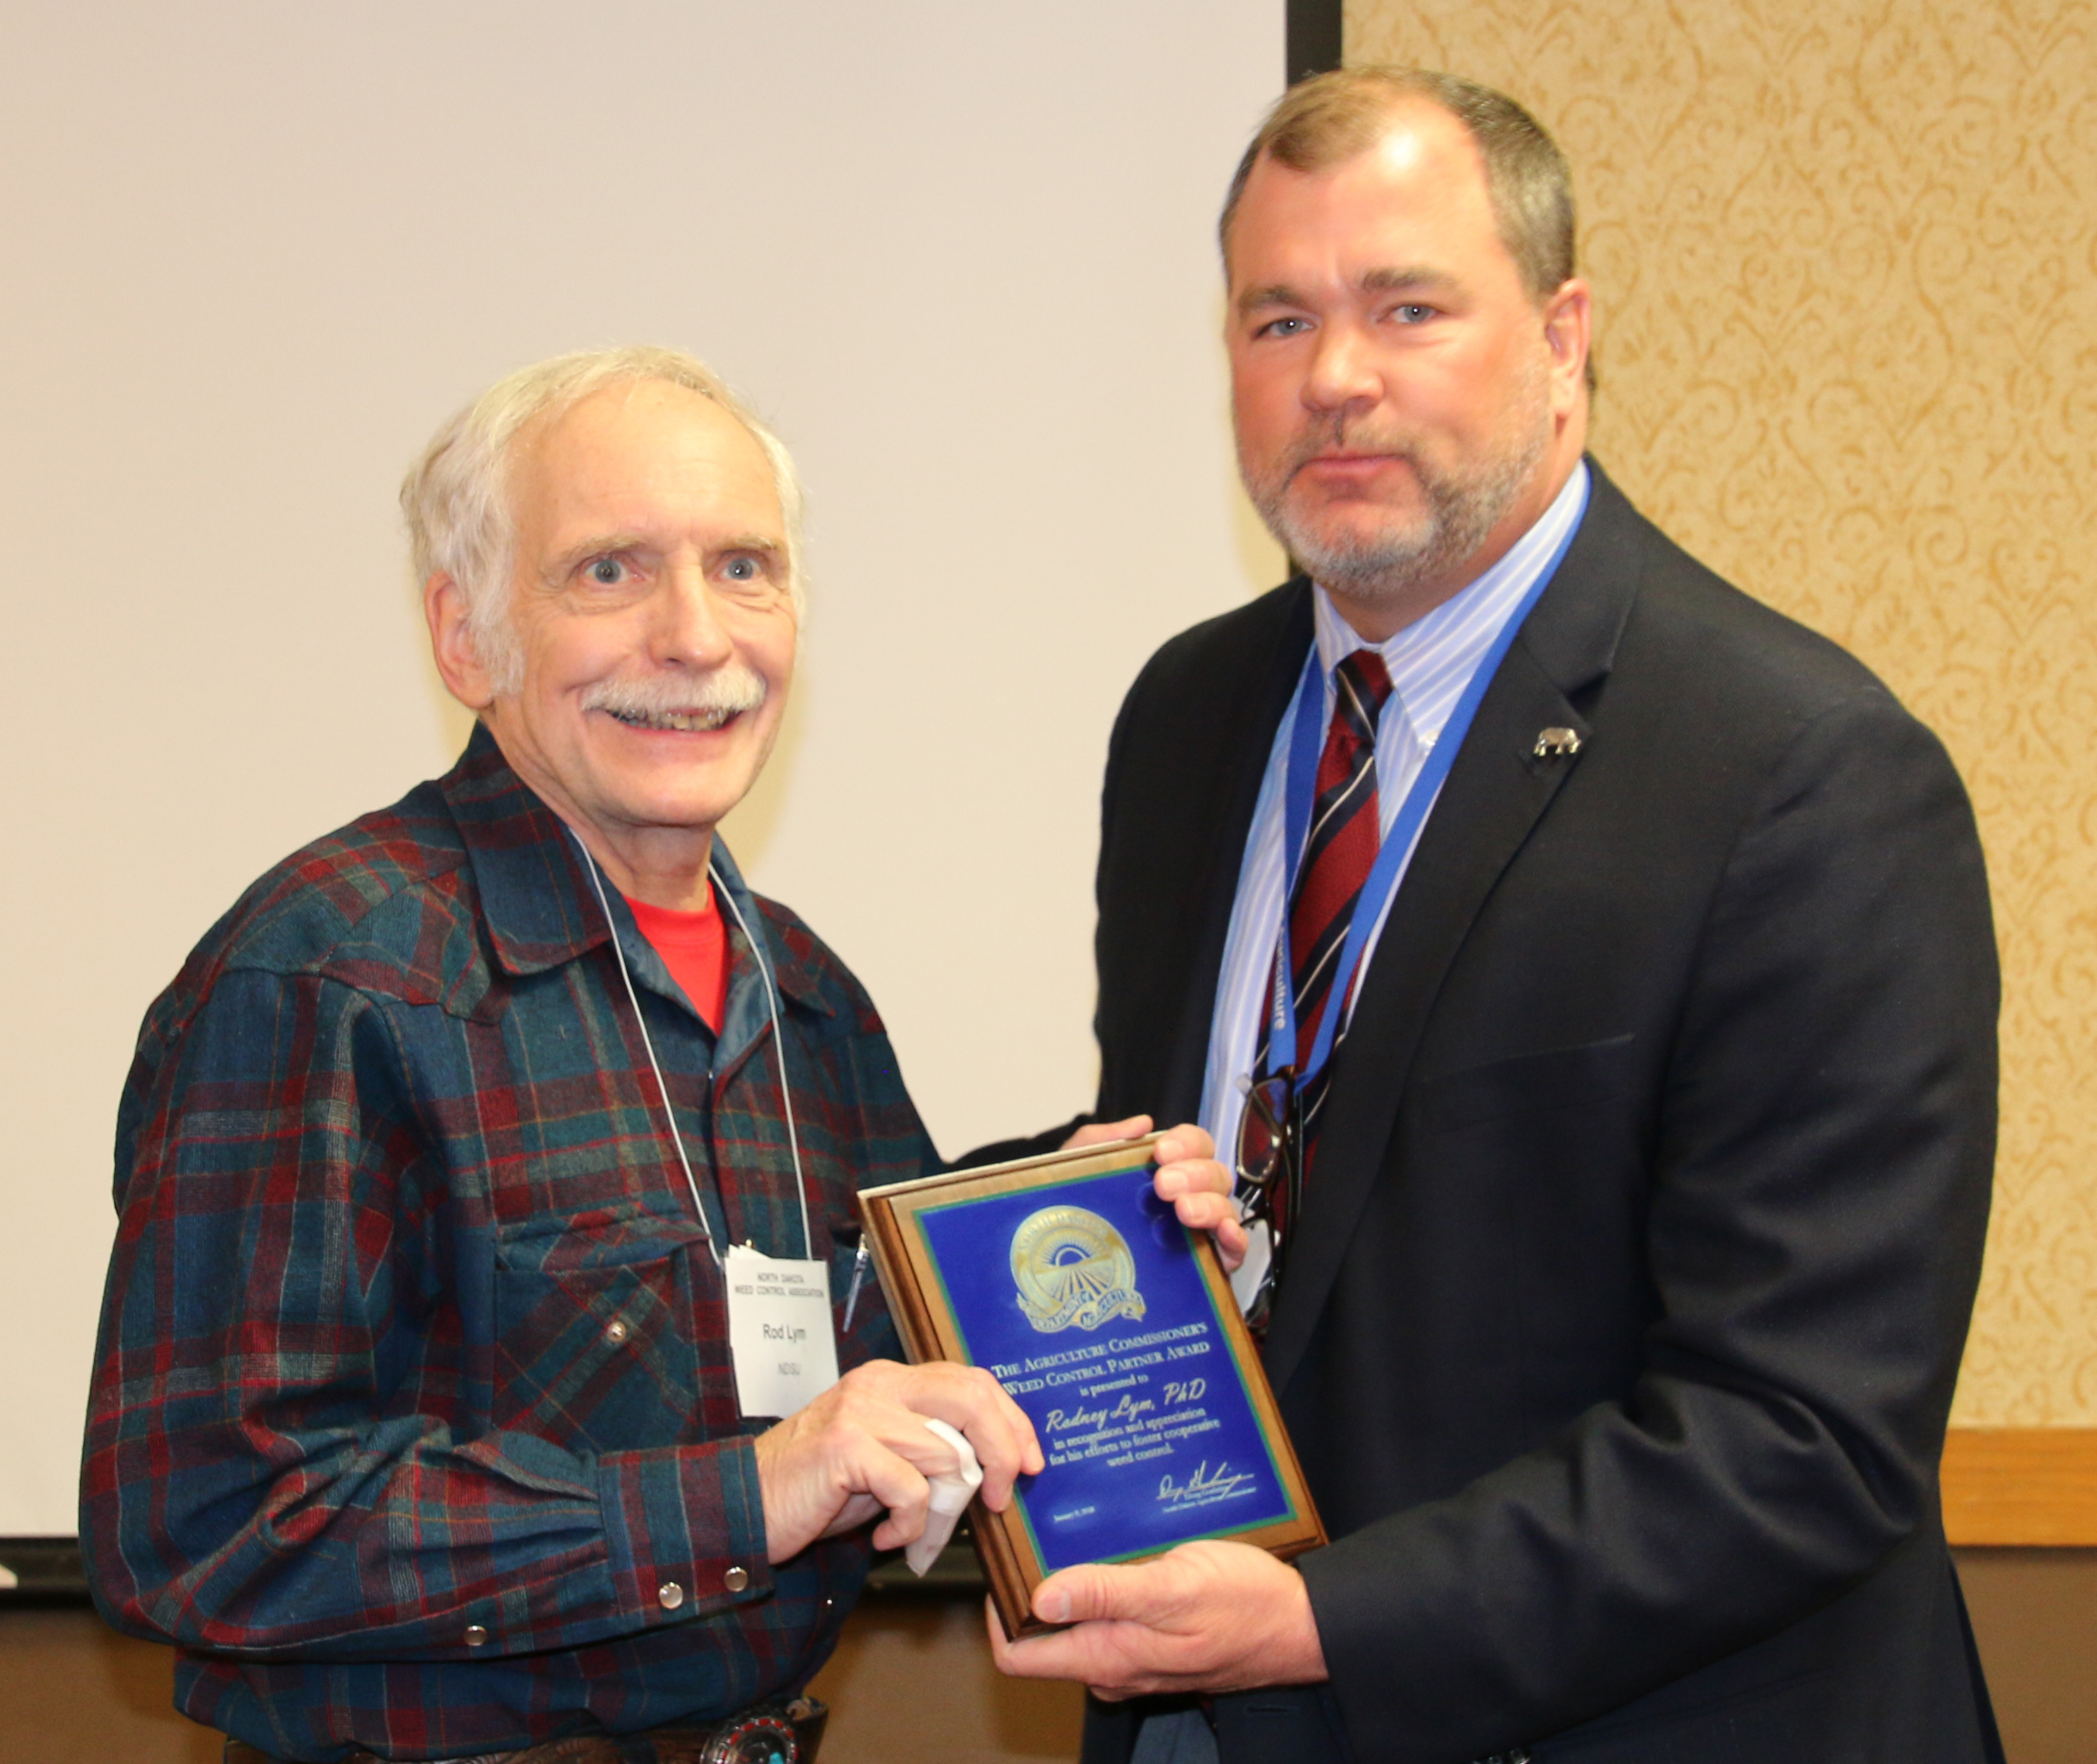 Deputy Commissioner Tom Bodine presents the award to Dr. Rodney Lym